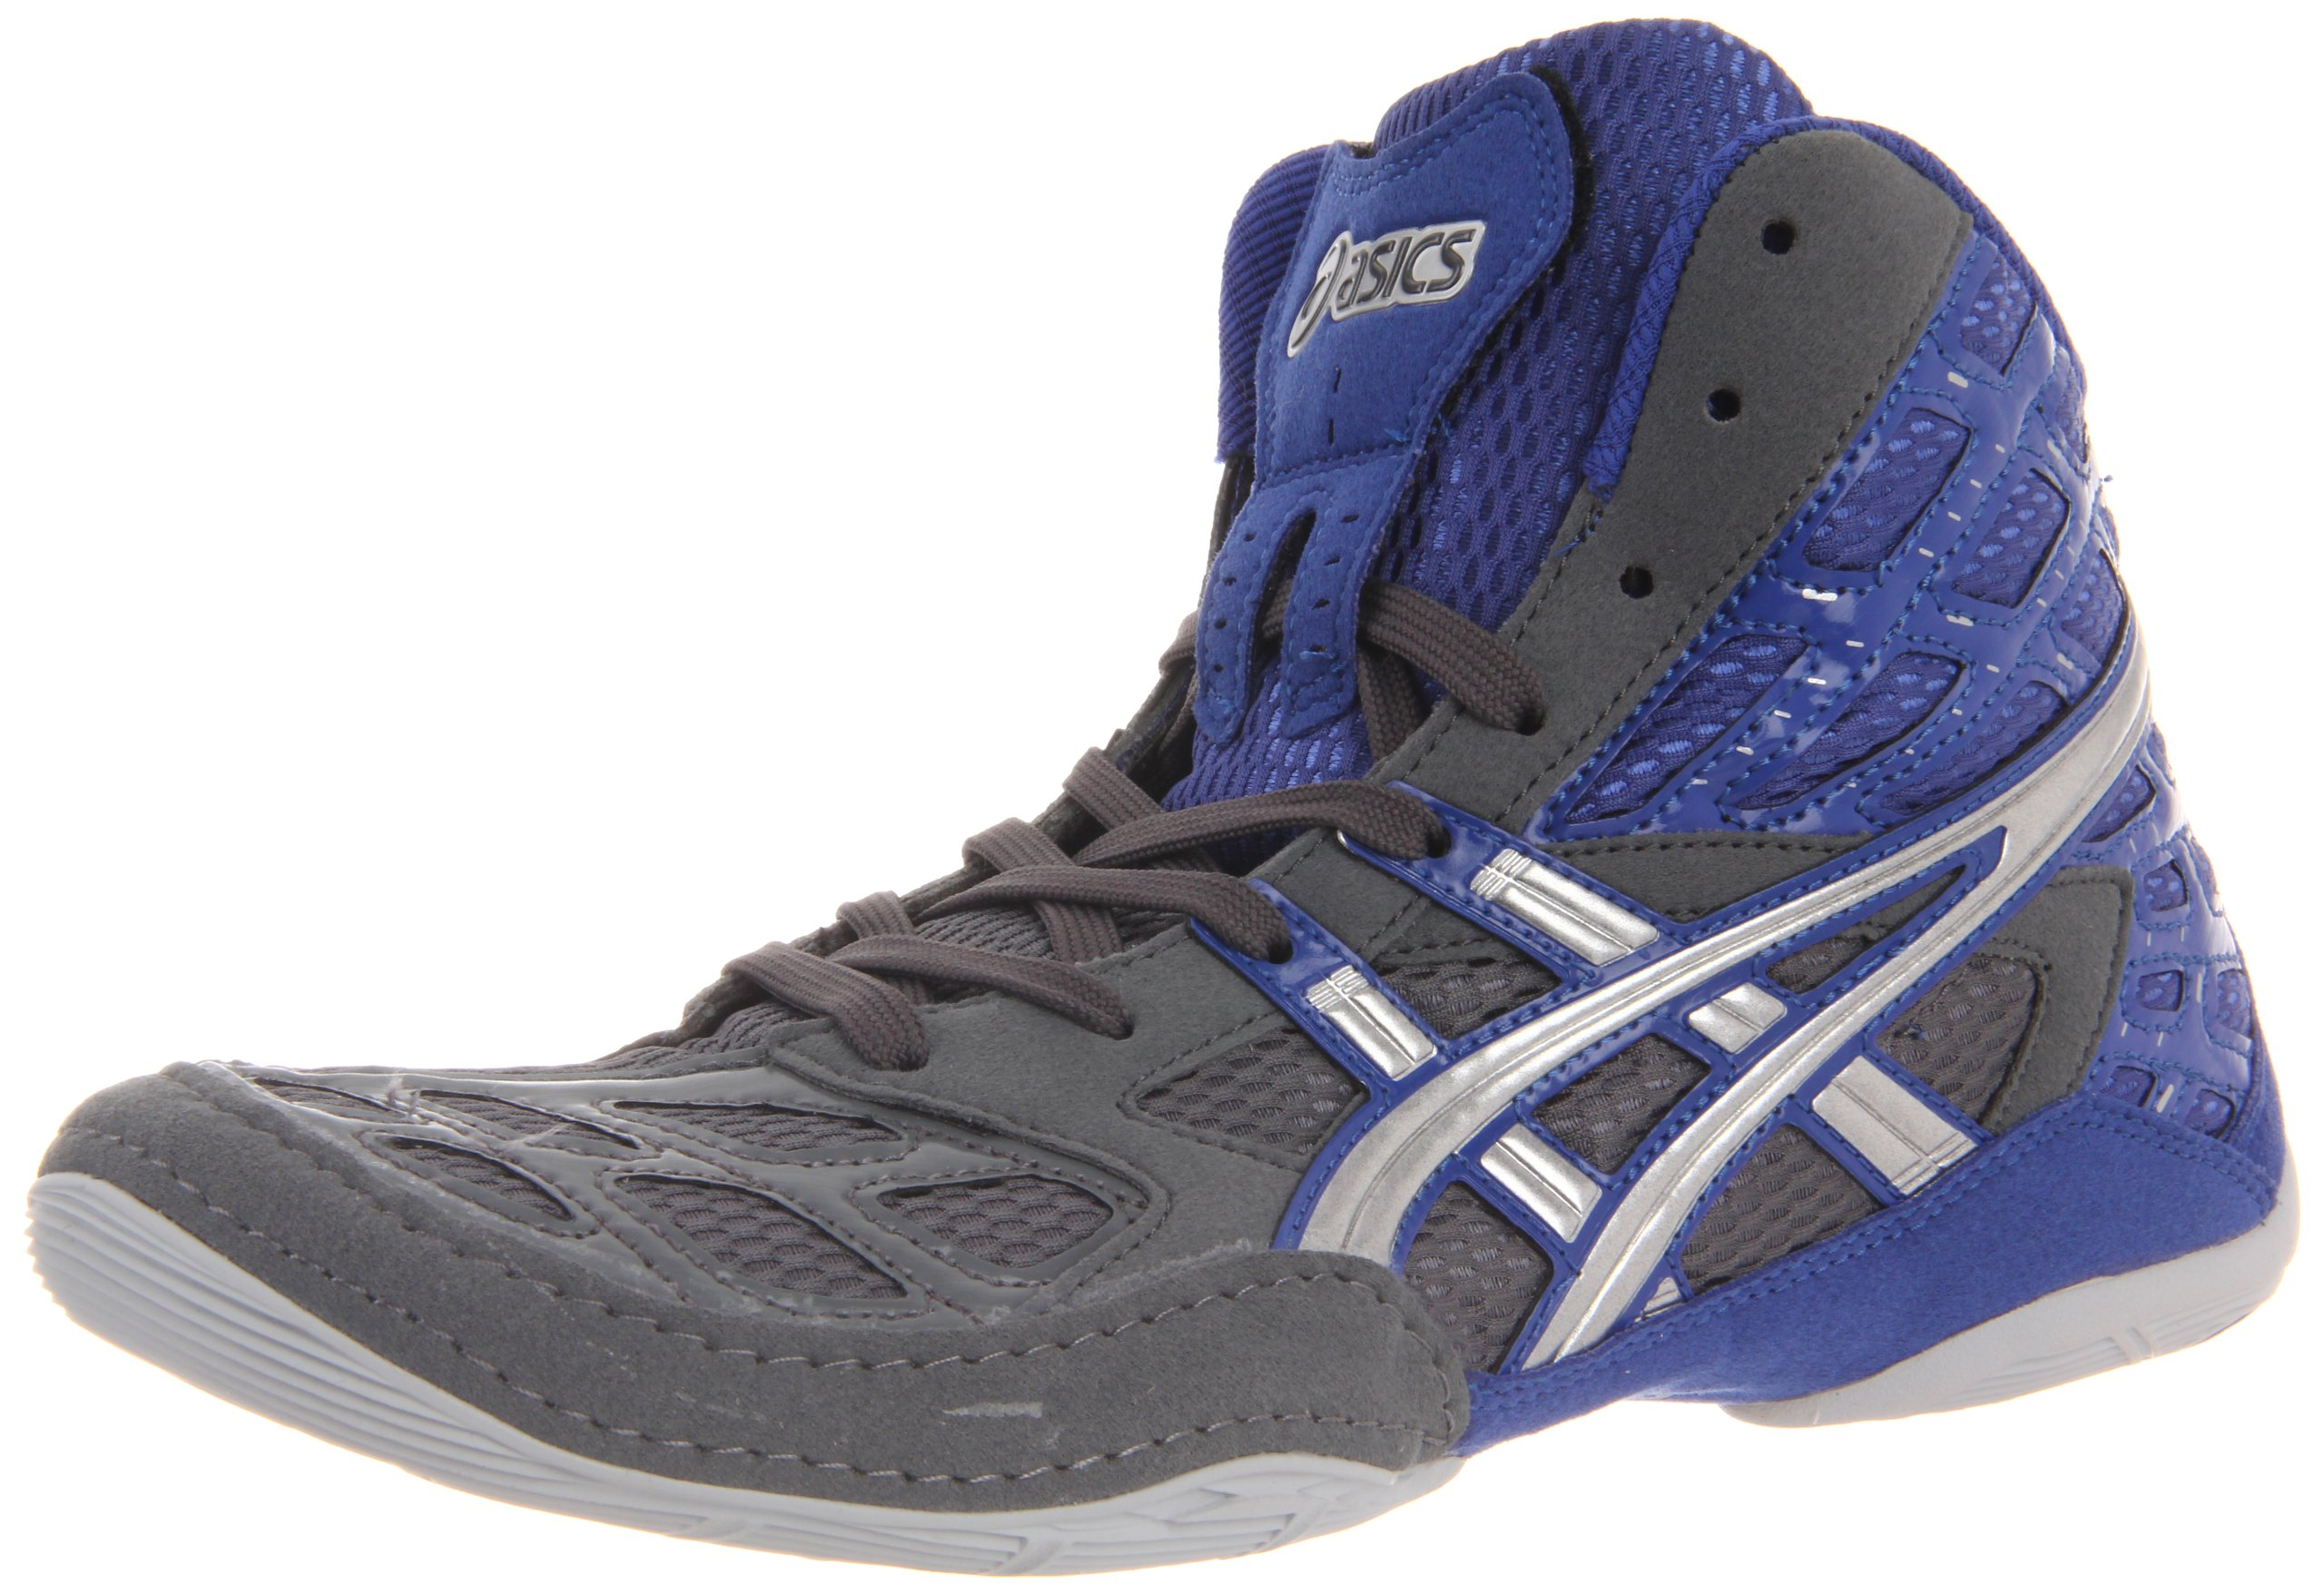 ASICS Men's Split Second 9 Wrestling Shoe,Graphite/Silver/Royal,10 M US